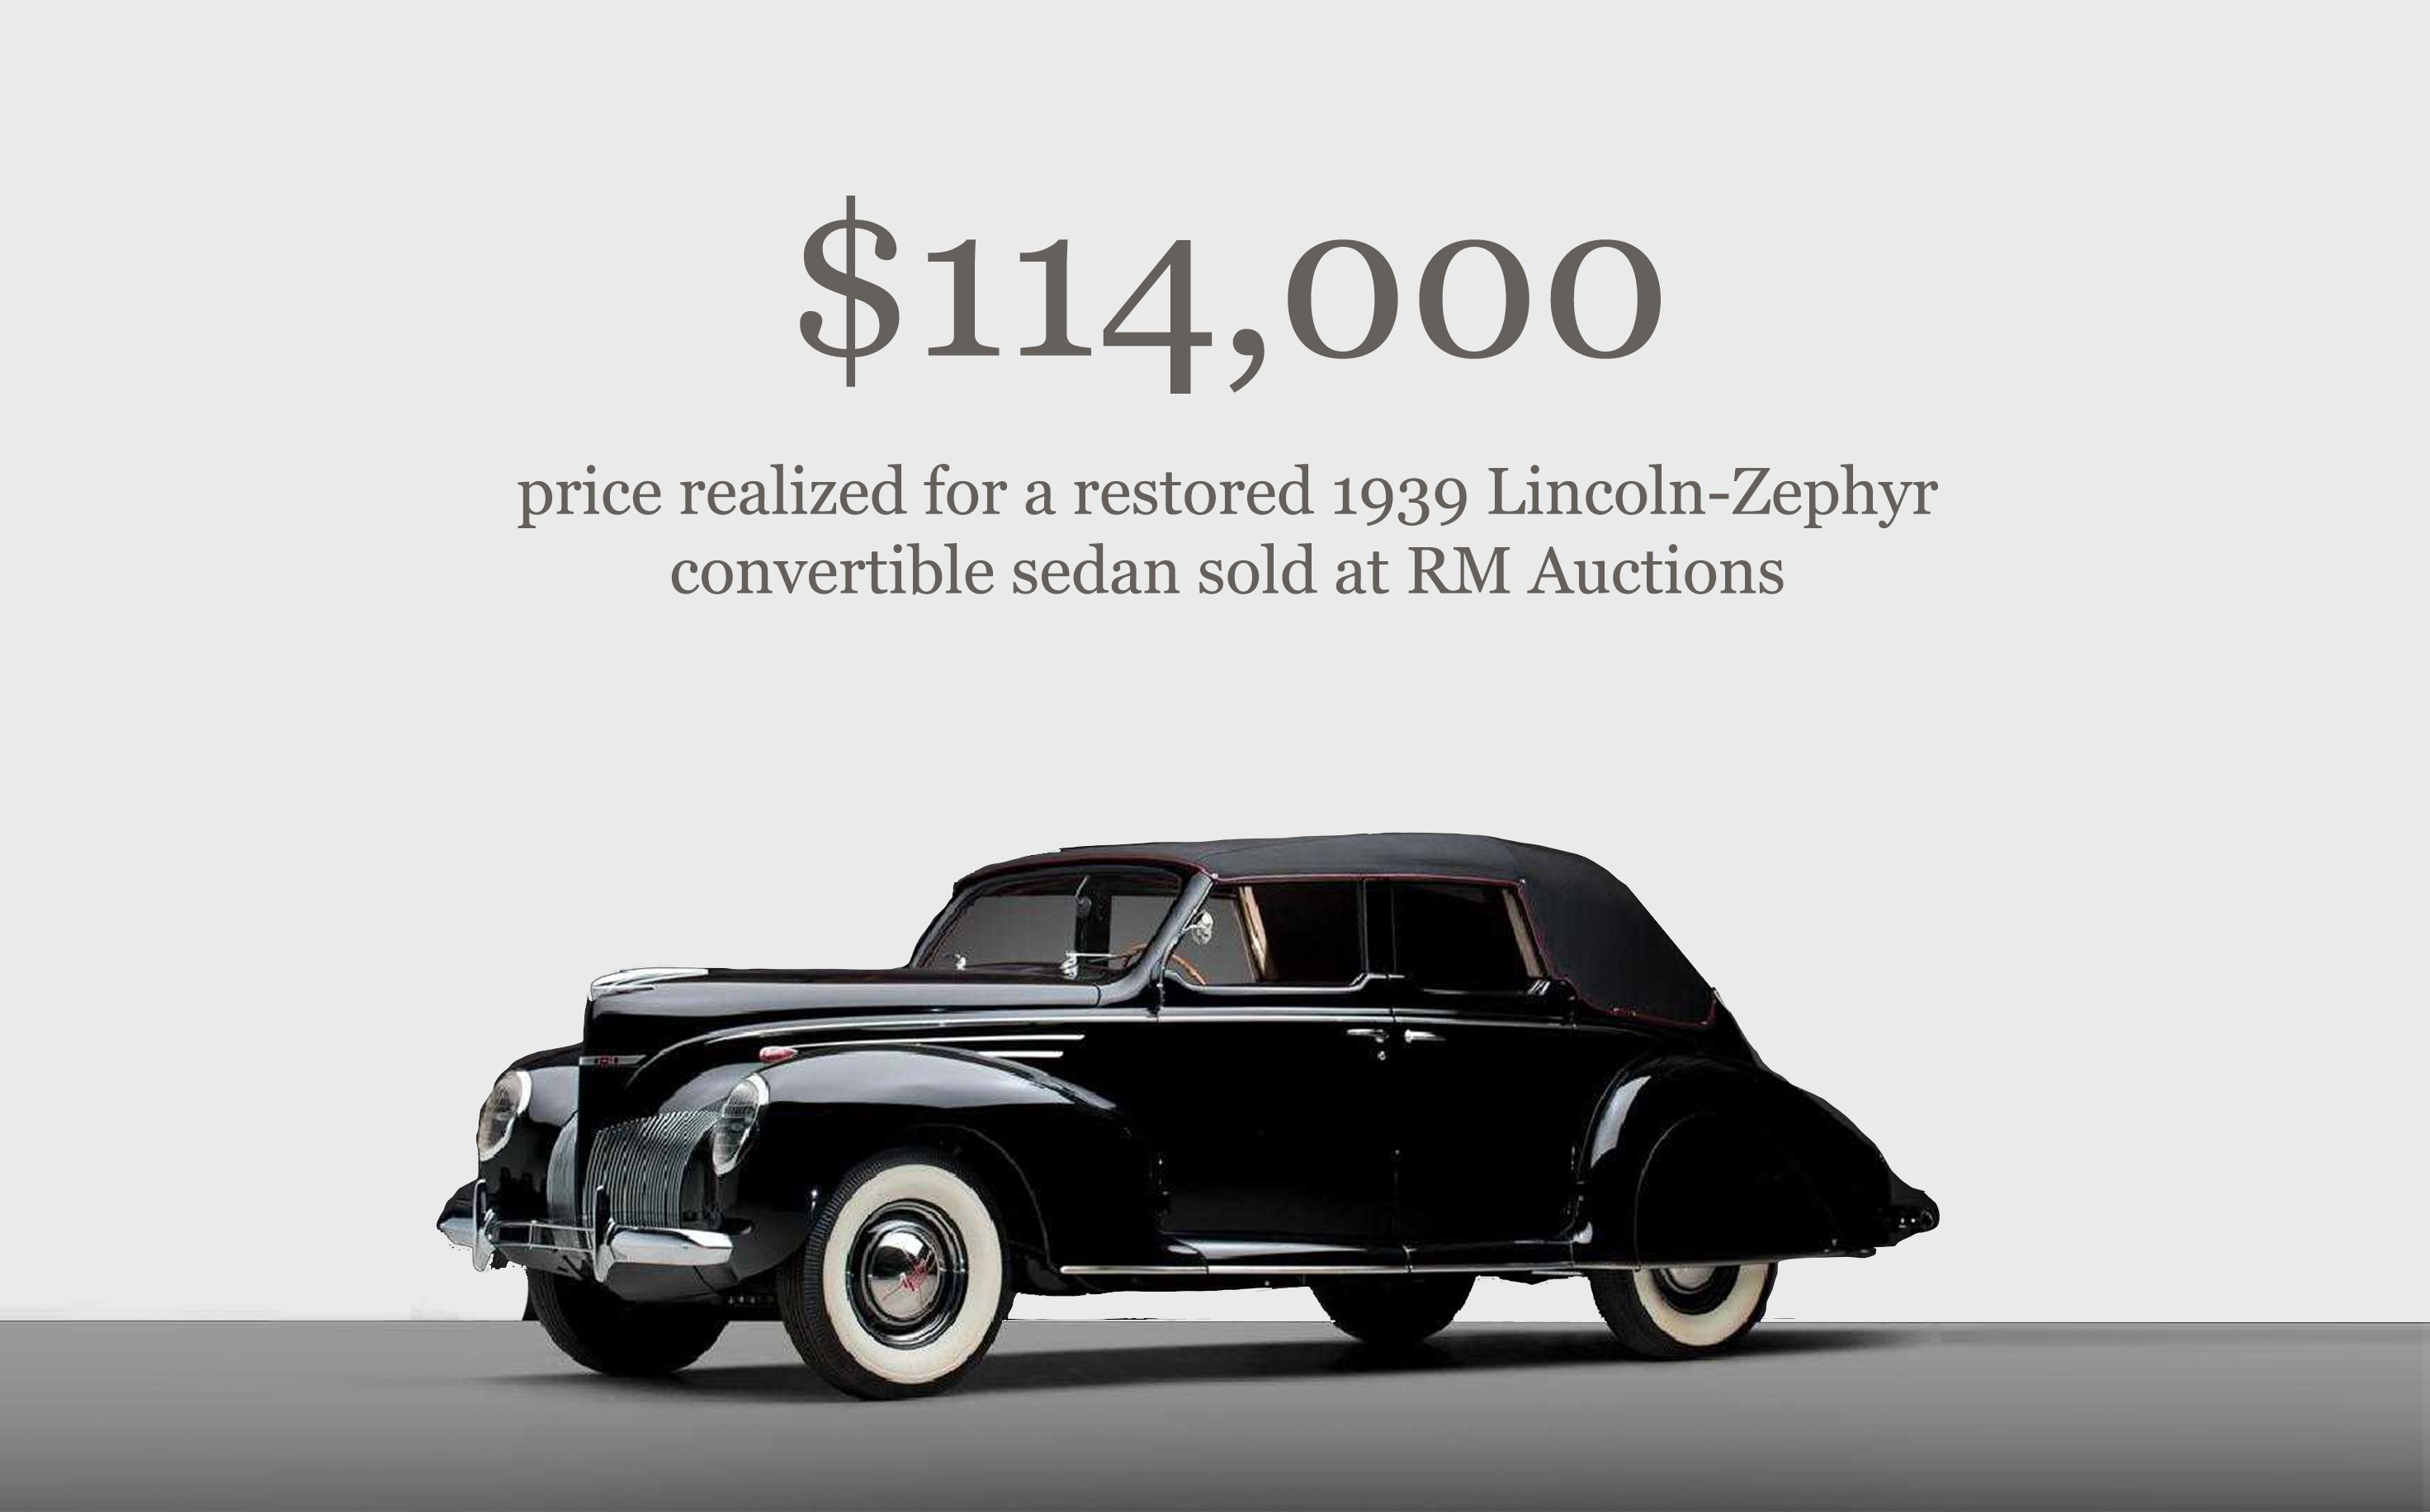 $114,000 price realized for a estored 1939 Lincoln-Zephyr convertible sedan sold at RM Auctions